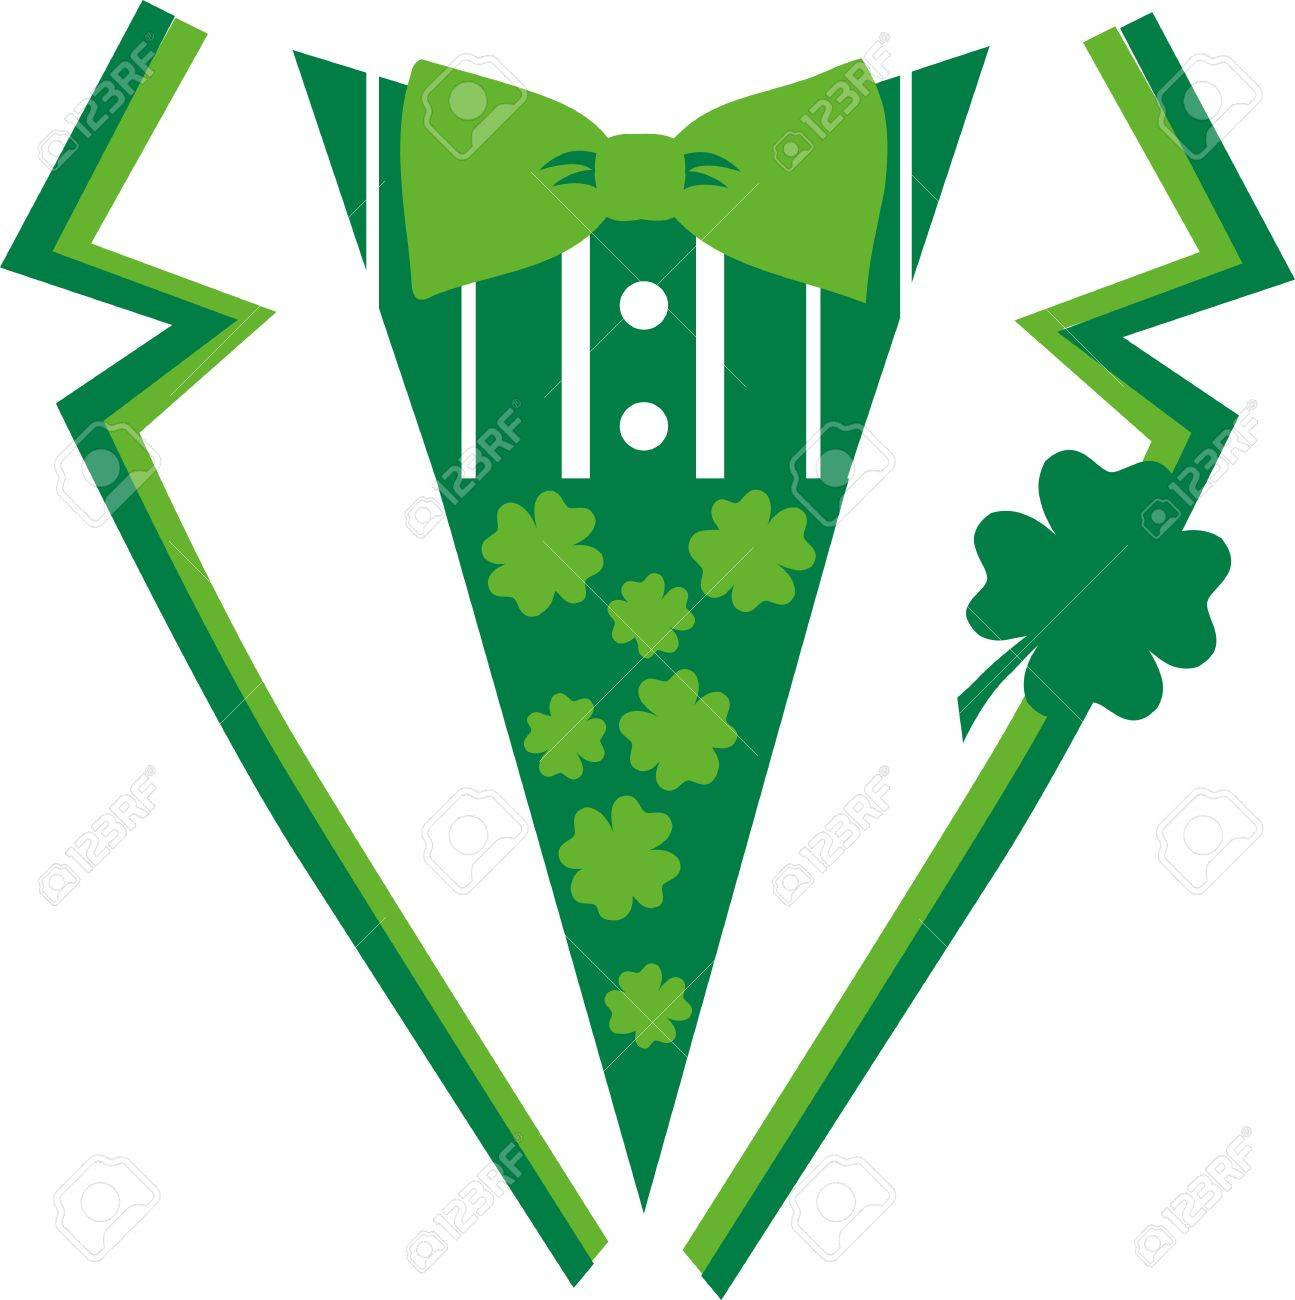 1295x1300 Green St. Patrick's Day Suit With Bow Tie Royalty Free Cliparts